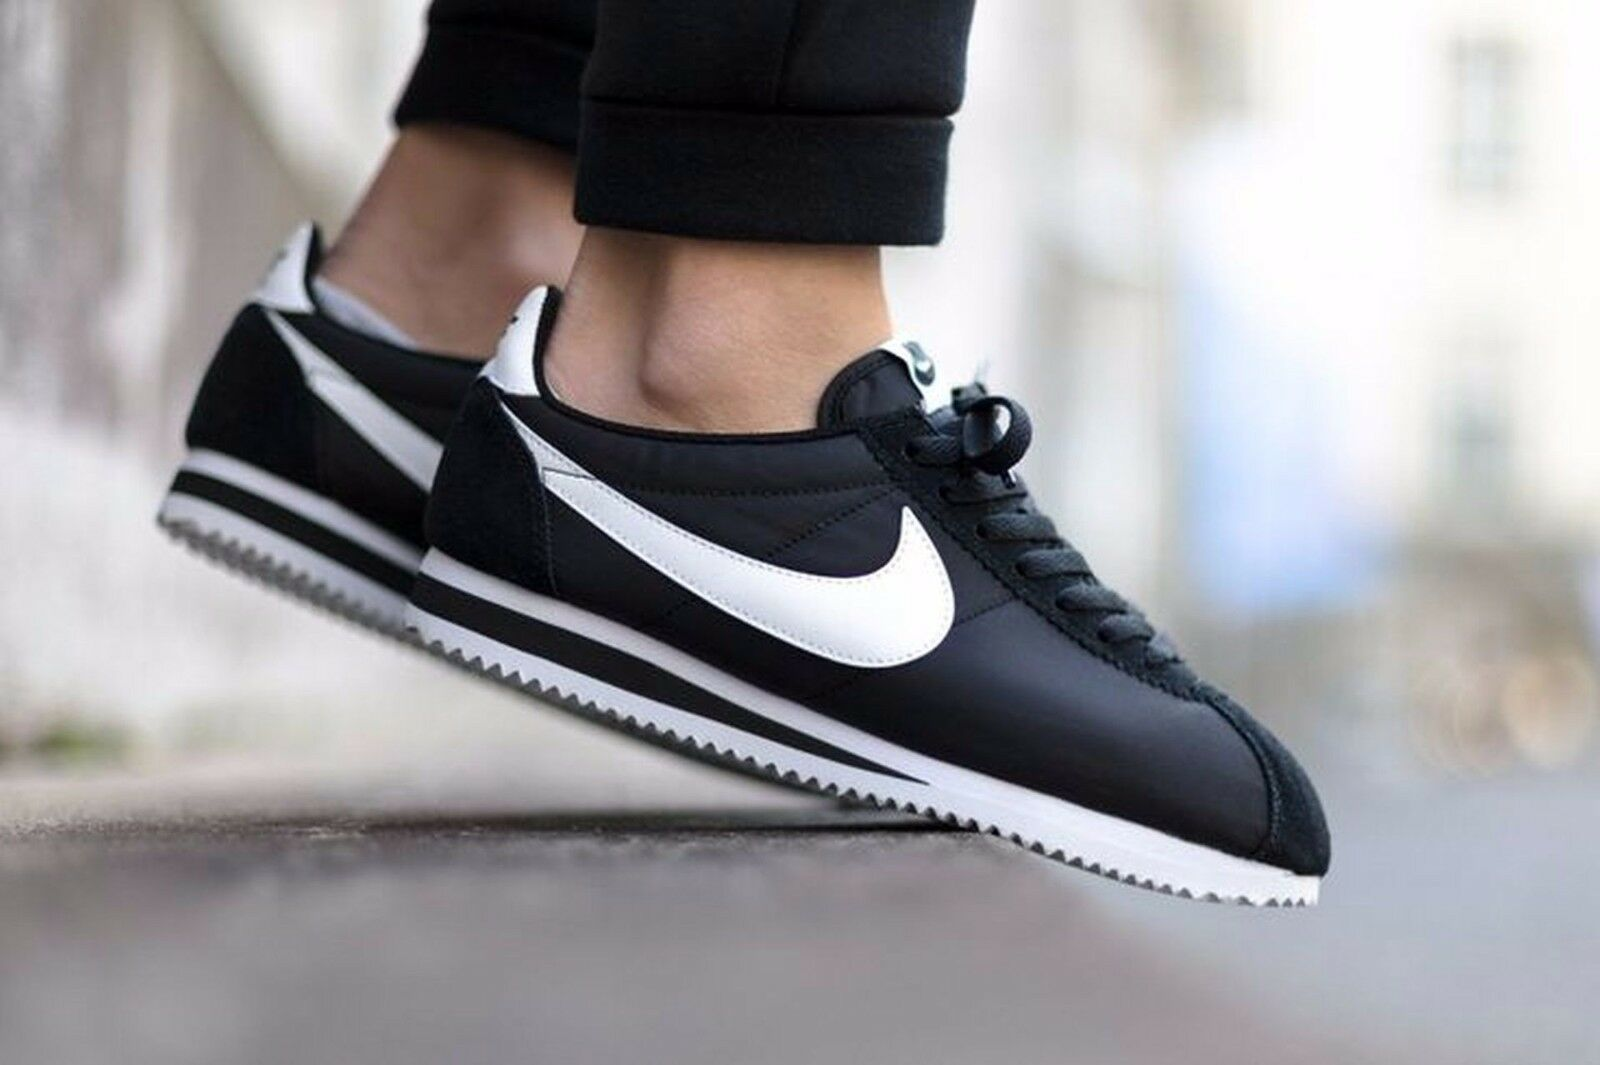 Nike Cortez Basic Leather 819719-012 Mens Sz 12 Black   White   Metallic Silver